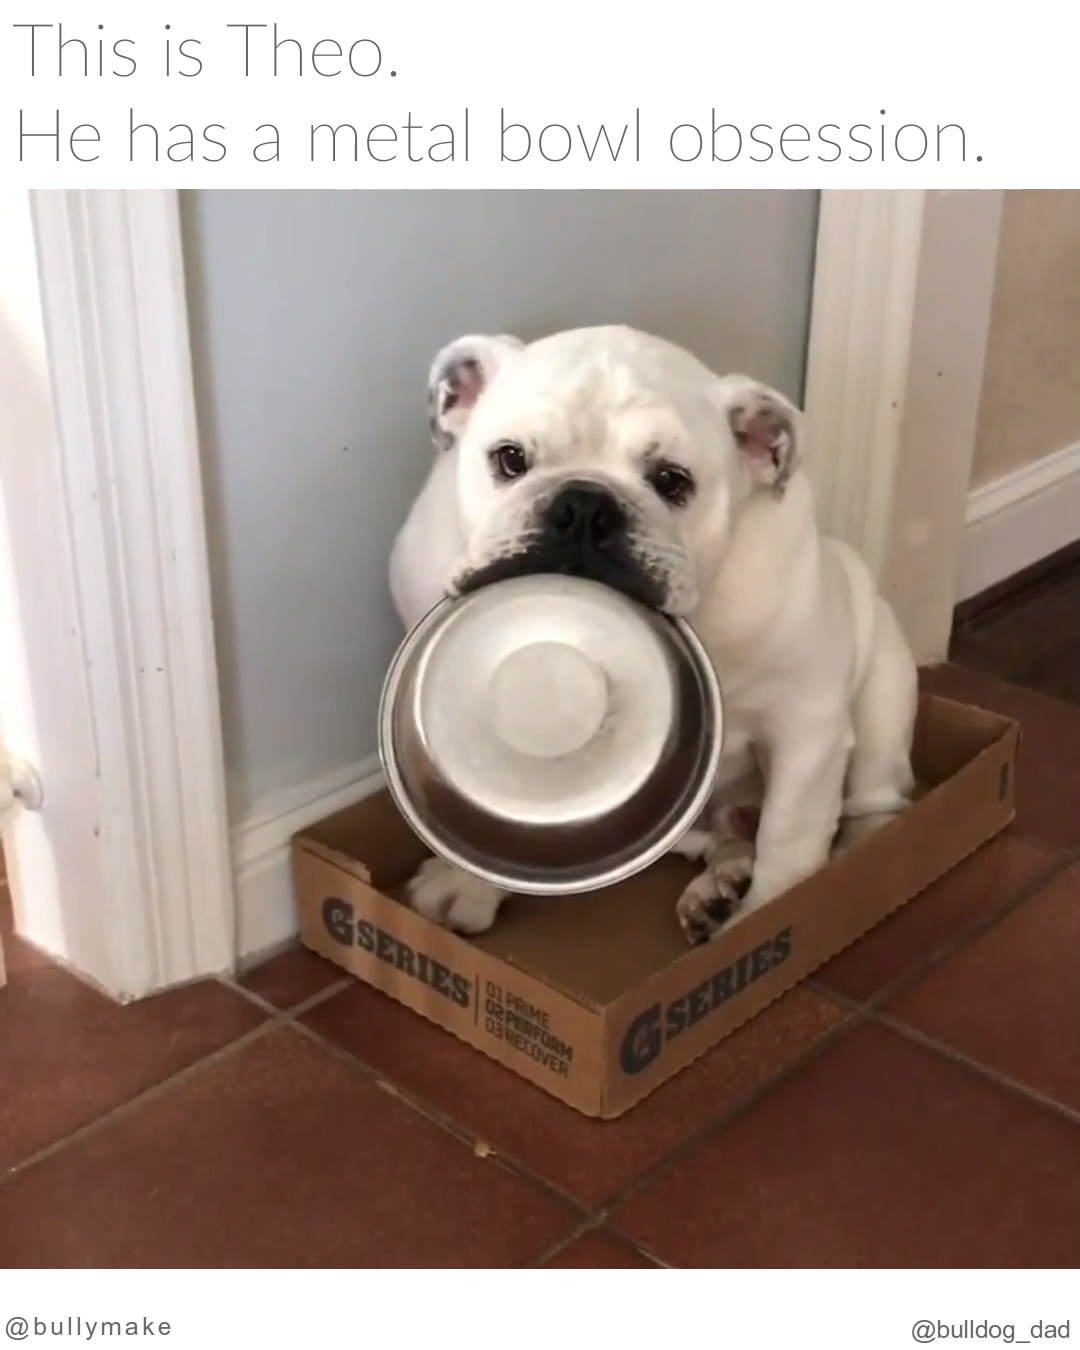 English Bulldog is Obsessed with Metal Bowls #funnybulldog He never goes anywhere without one. via: @bulldog_dad . Follow @bullymake for more adorable bulldogs!⠀ . #bulldog #bulldogdays #bulldoglove #bulldoglife #bulldogsofig #bulldogs #bulldogsofinstagram #bulldogingles #englishbulldog #englishbulldogs #englishbulldogsofinstagram #dogs #dogsofinstagram